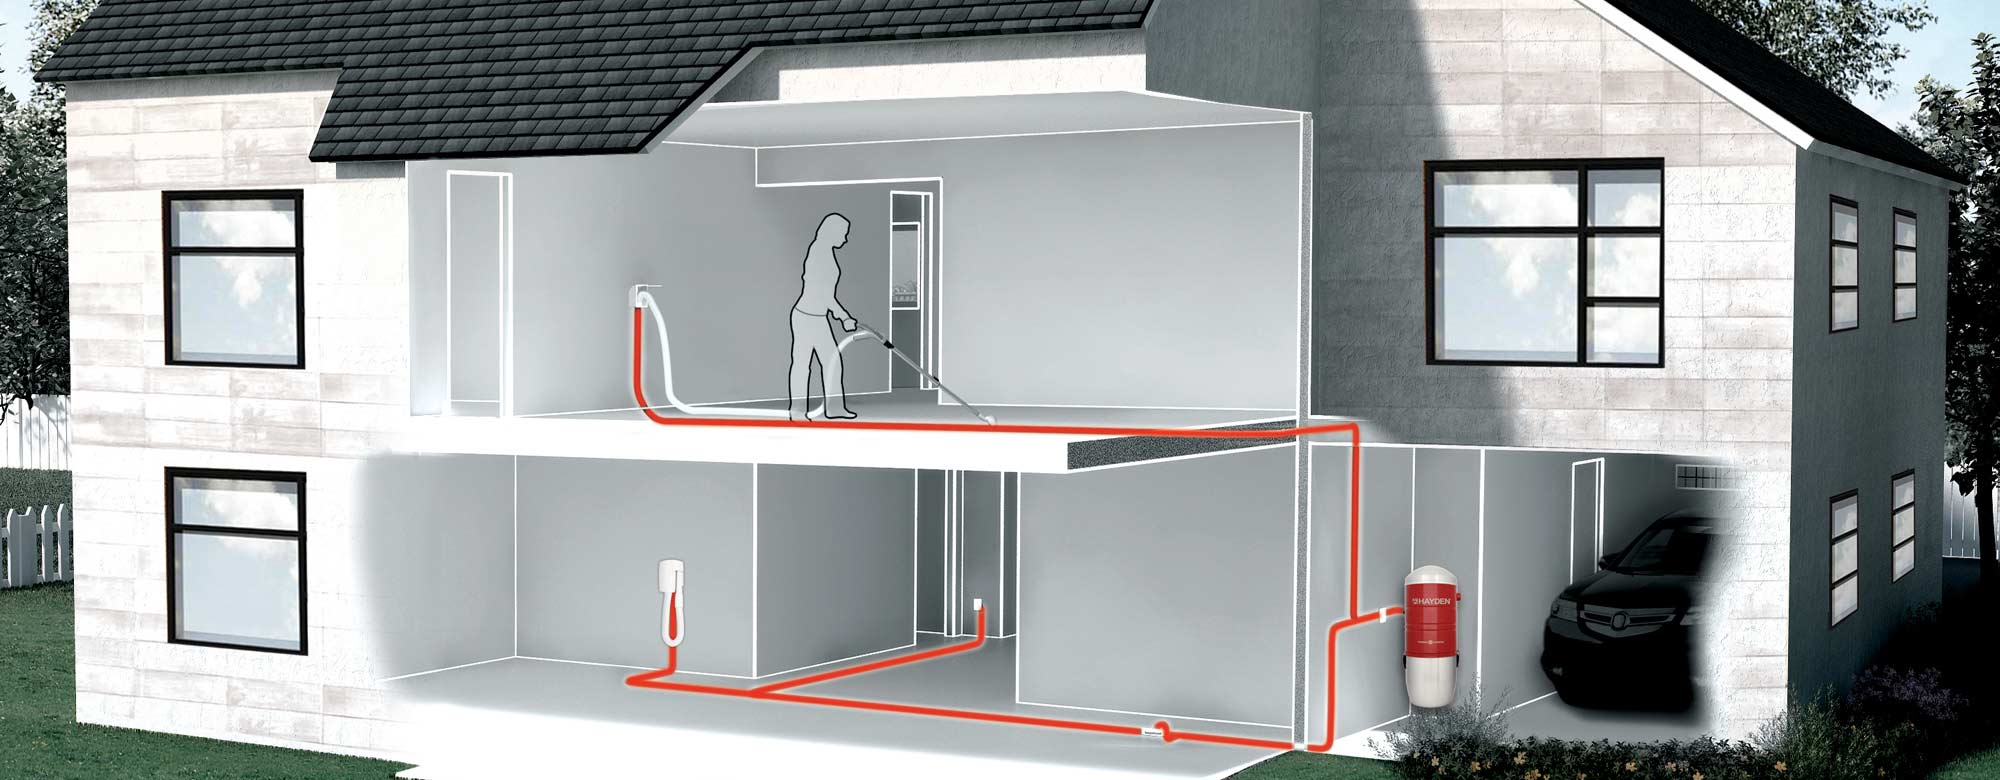 Central Vacuum Systems and How They Work. Scheme of possible coverage area for the system